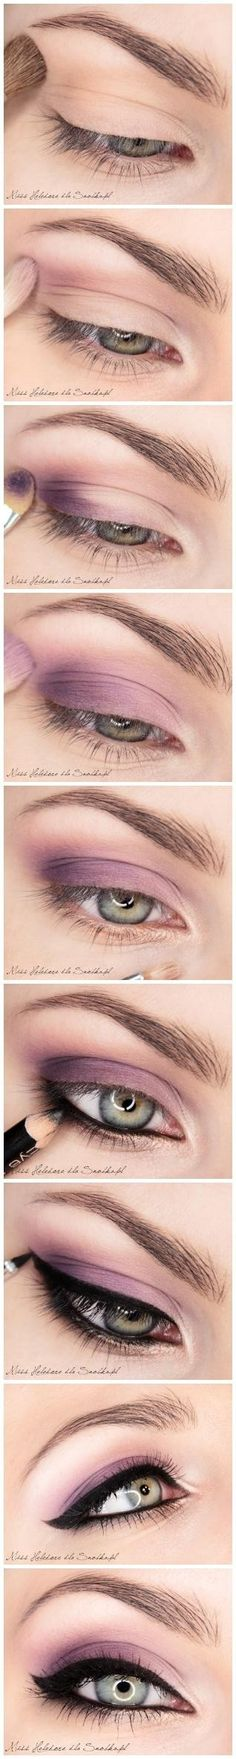 step by step for a great eye look!!!  love love love this!!!